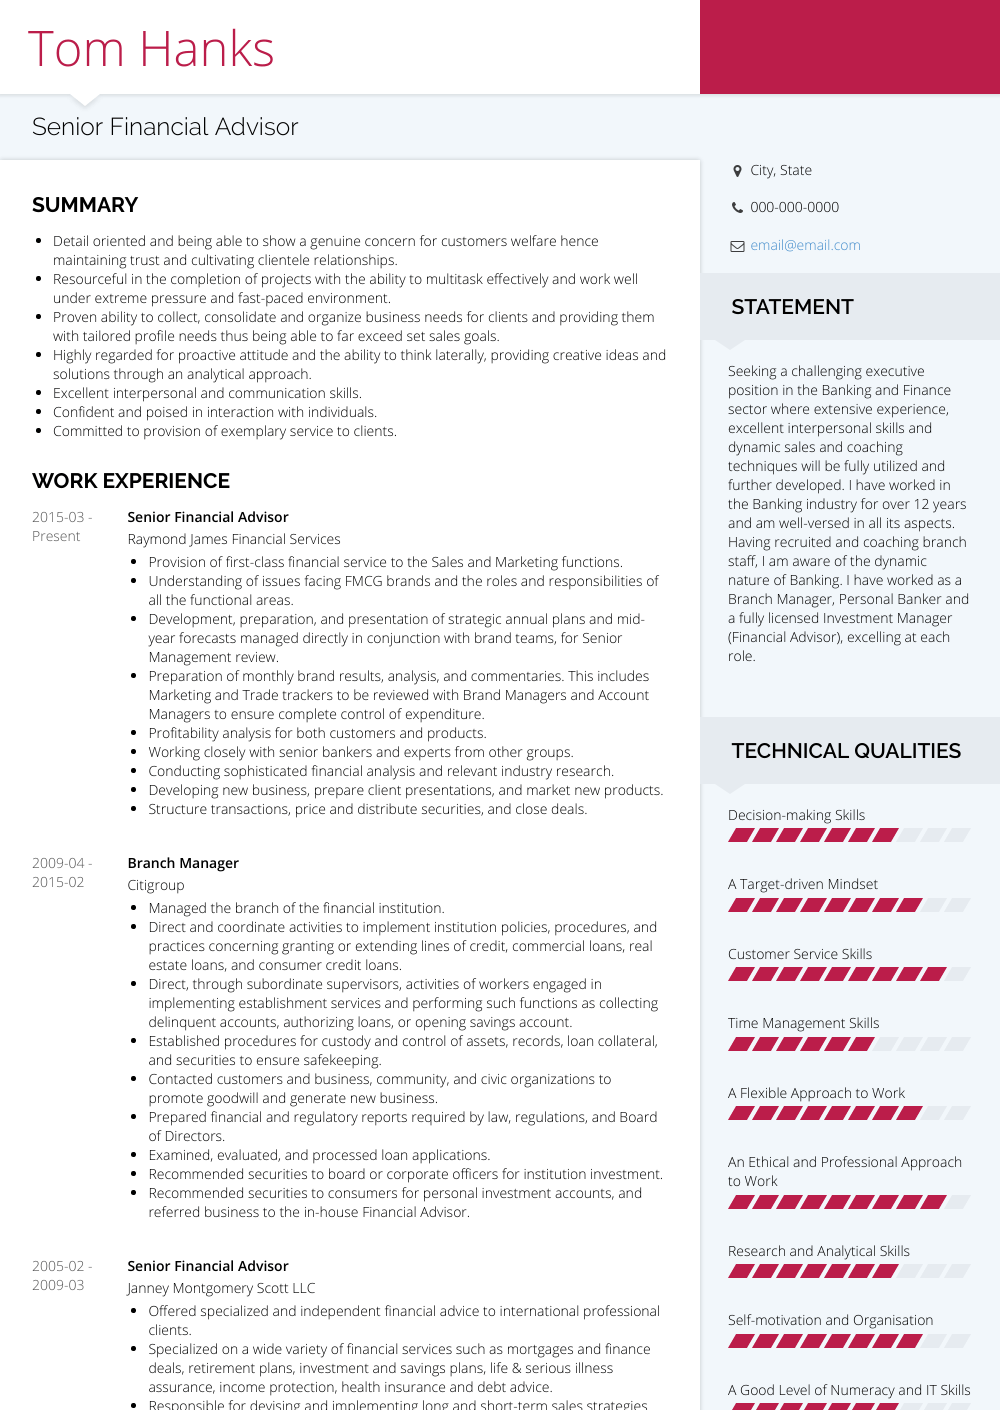 Financial Advisor - Resume Samples and Templates | VisualCV